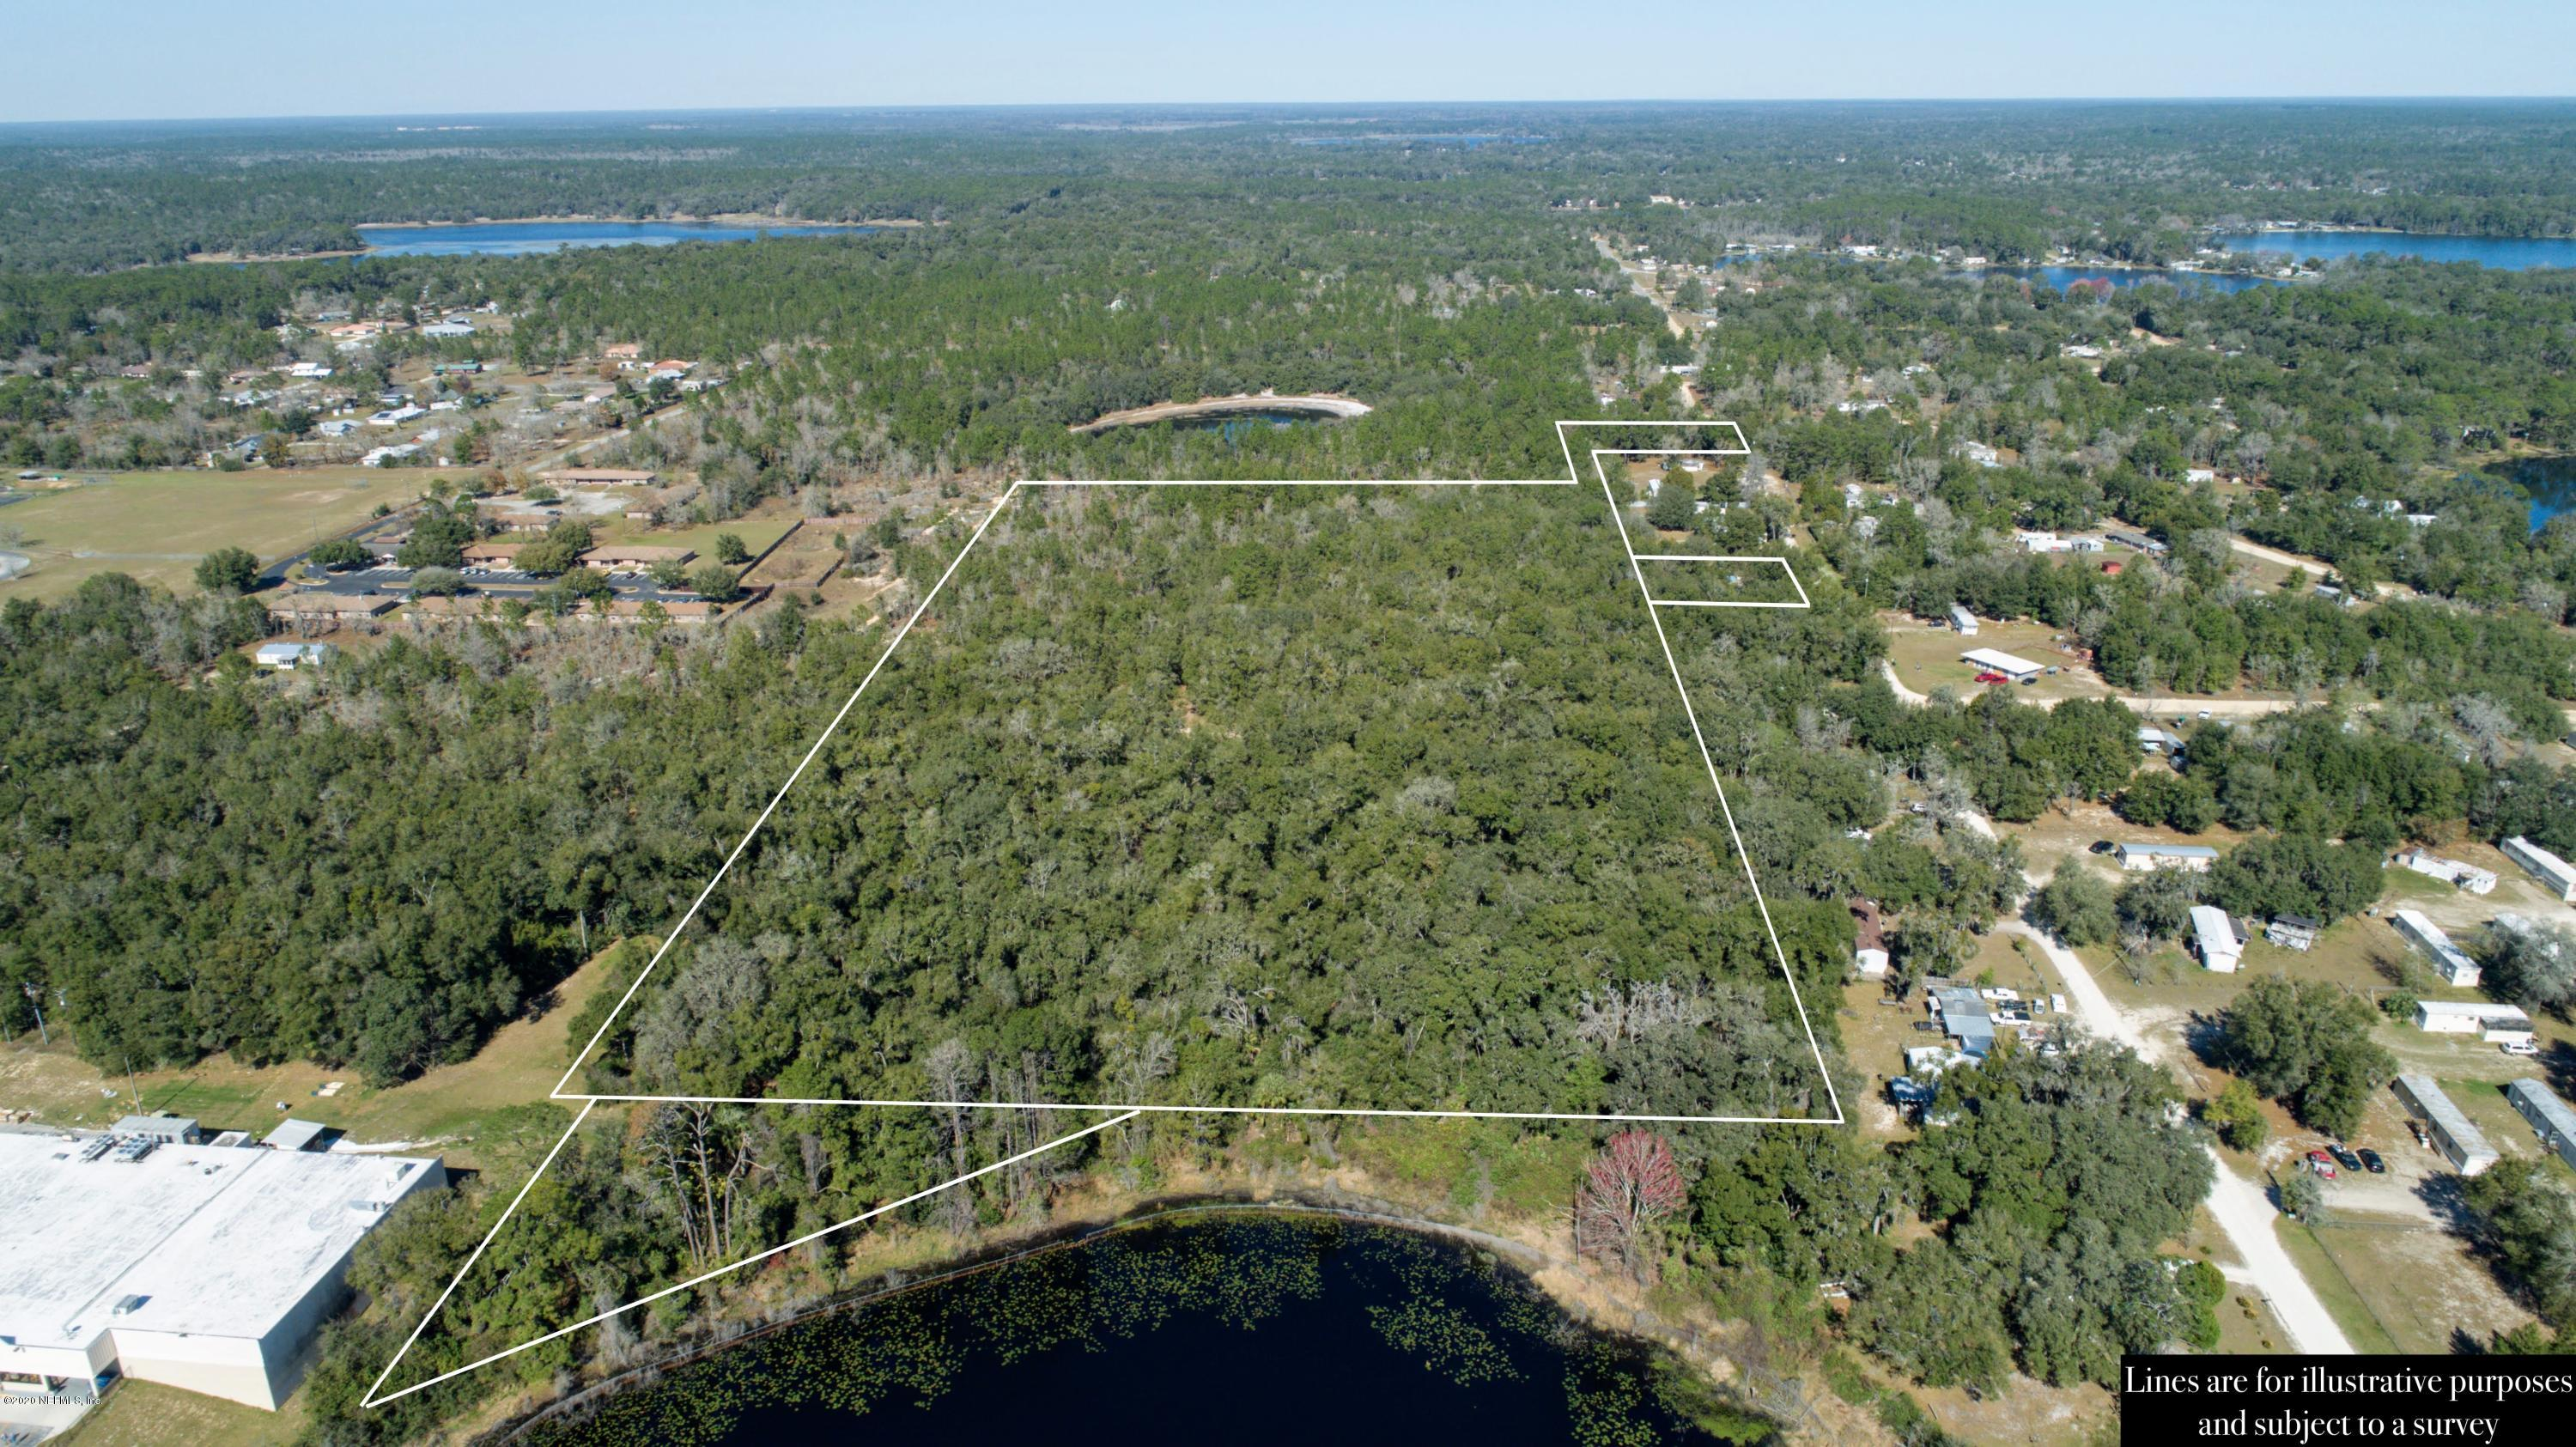 129 CHEROKEE, INTERLACHEN, FLORIDA 32148, ,Vacant land,For sale,CHEROKEE,1034307